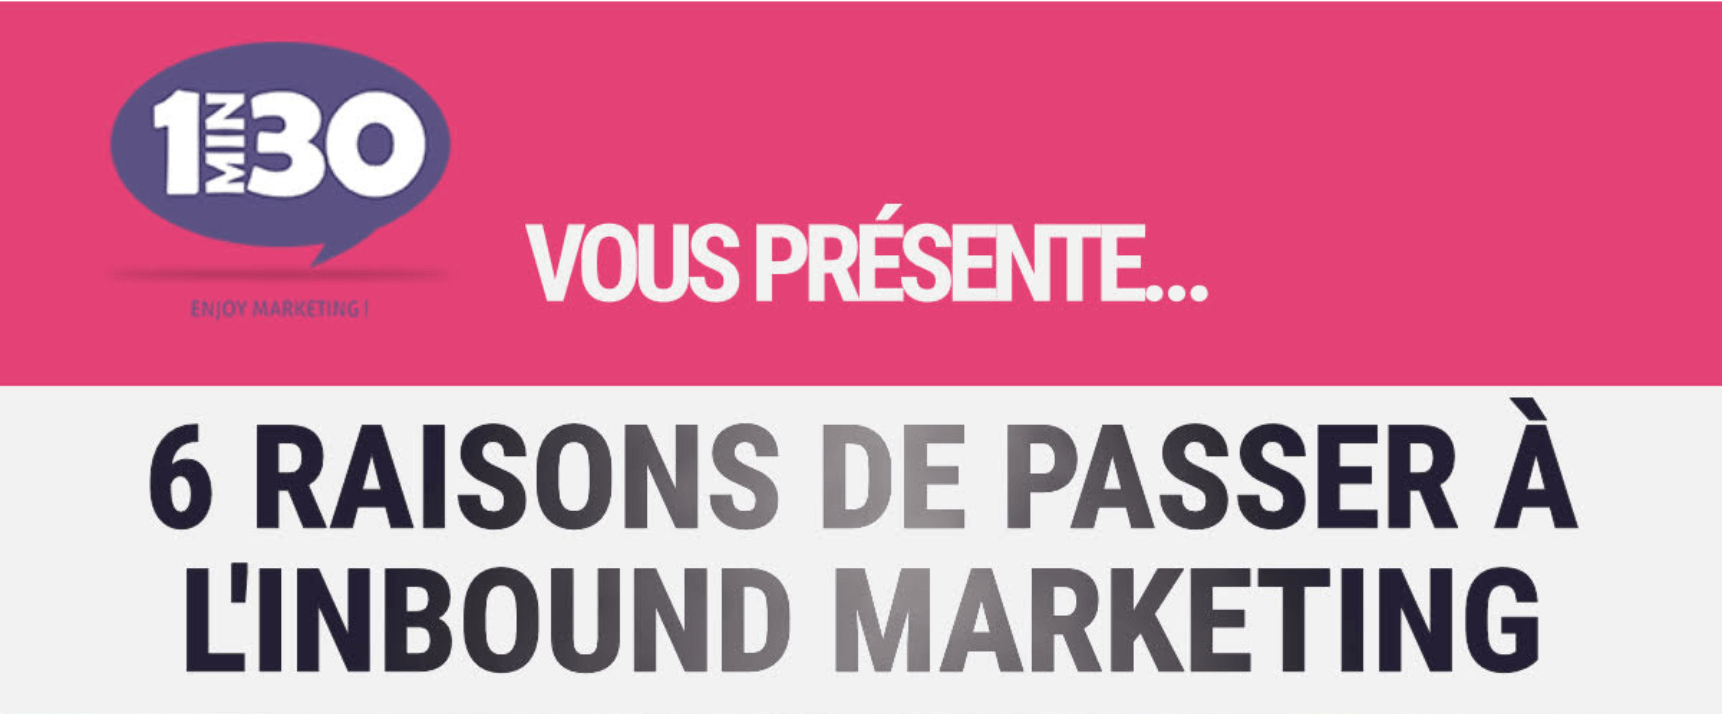 Infographie : 6 raisons de passer à l'Inbound marketing